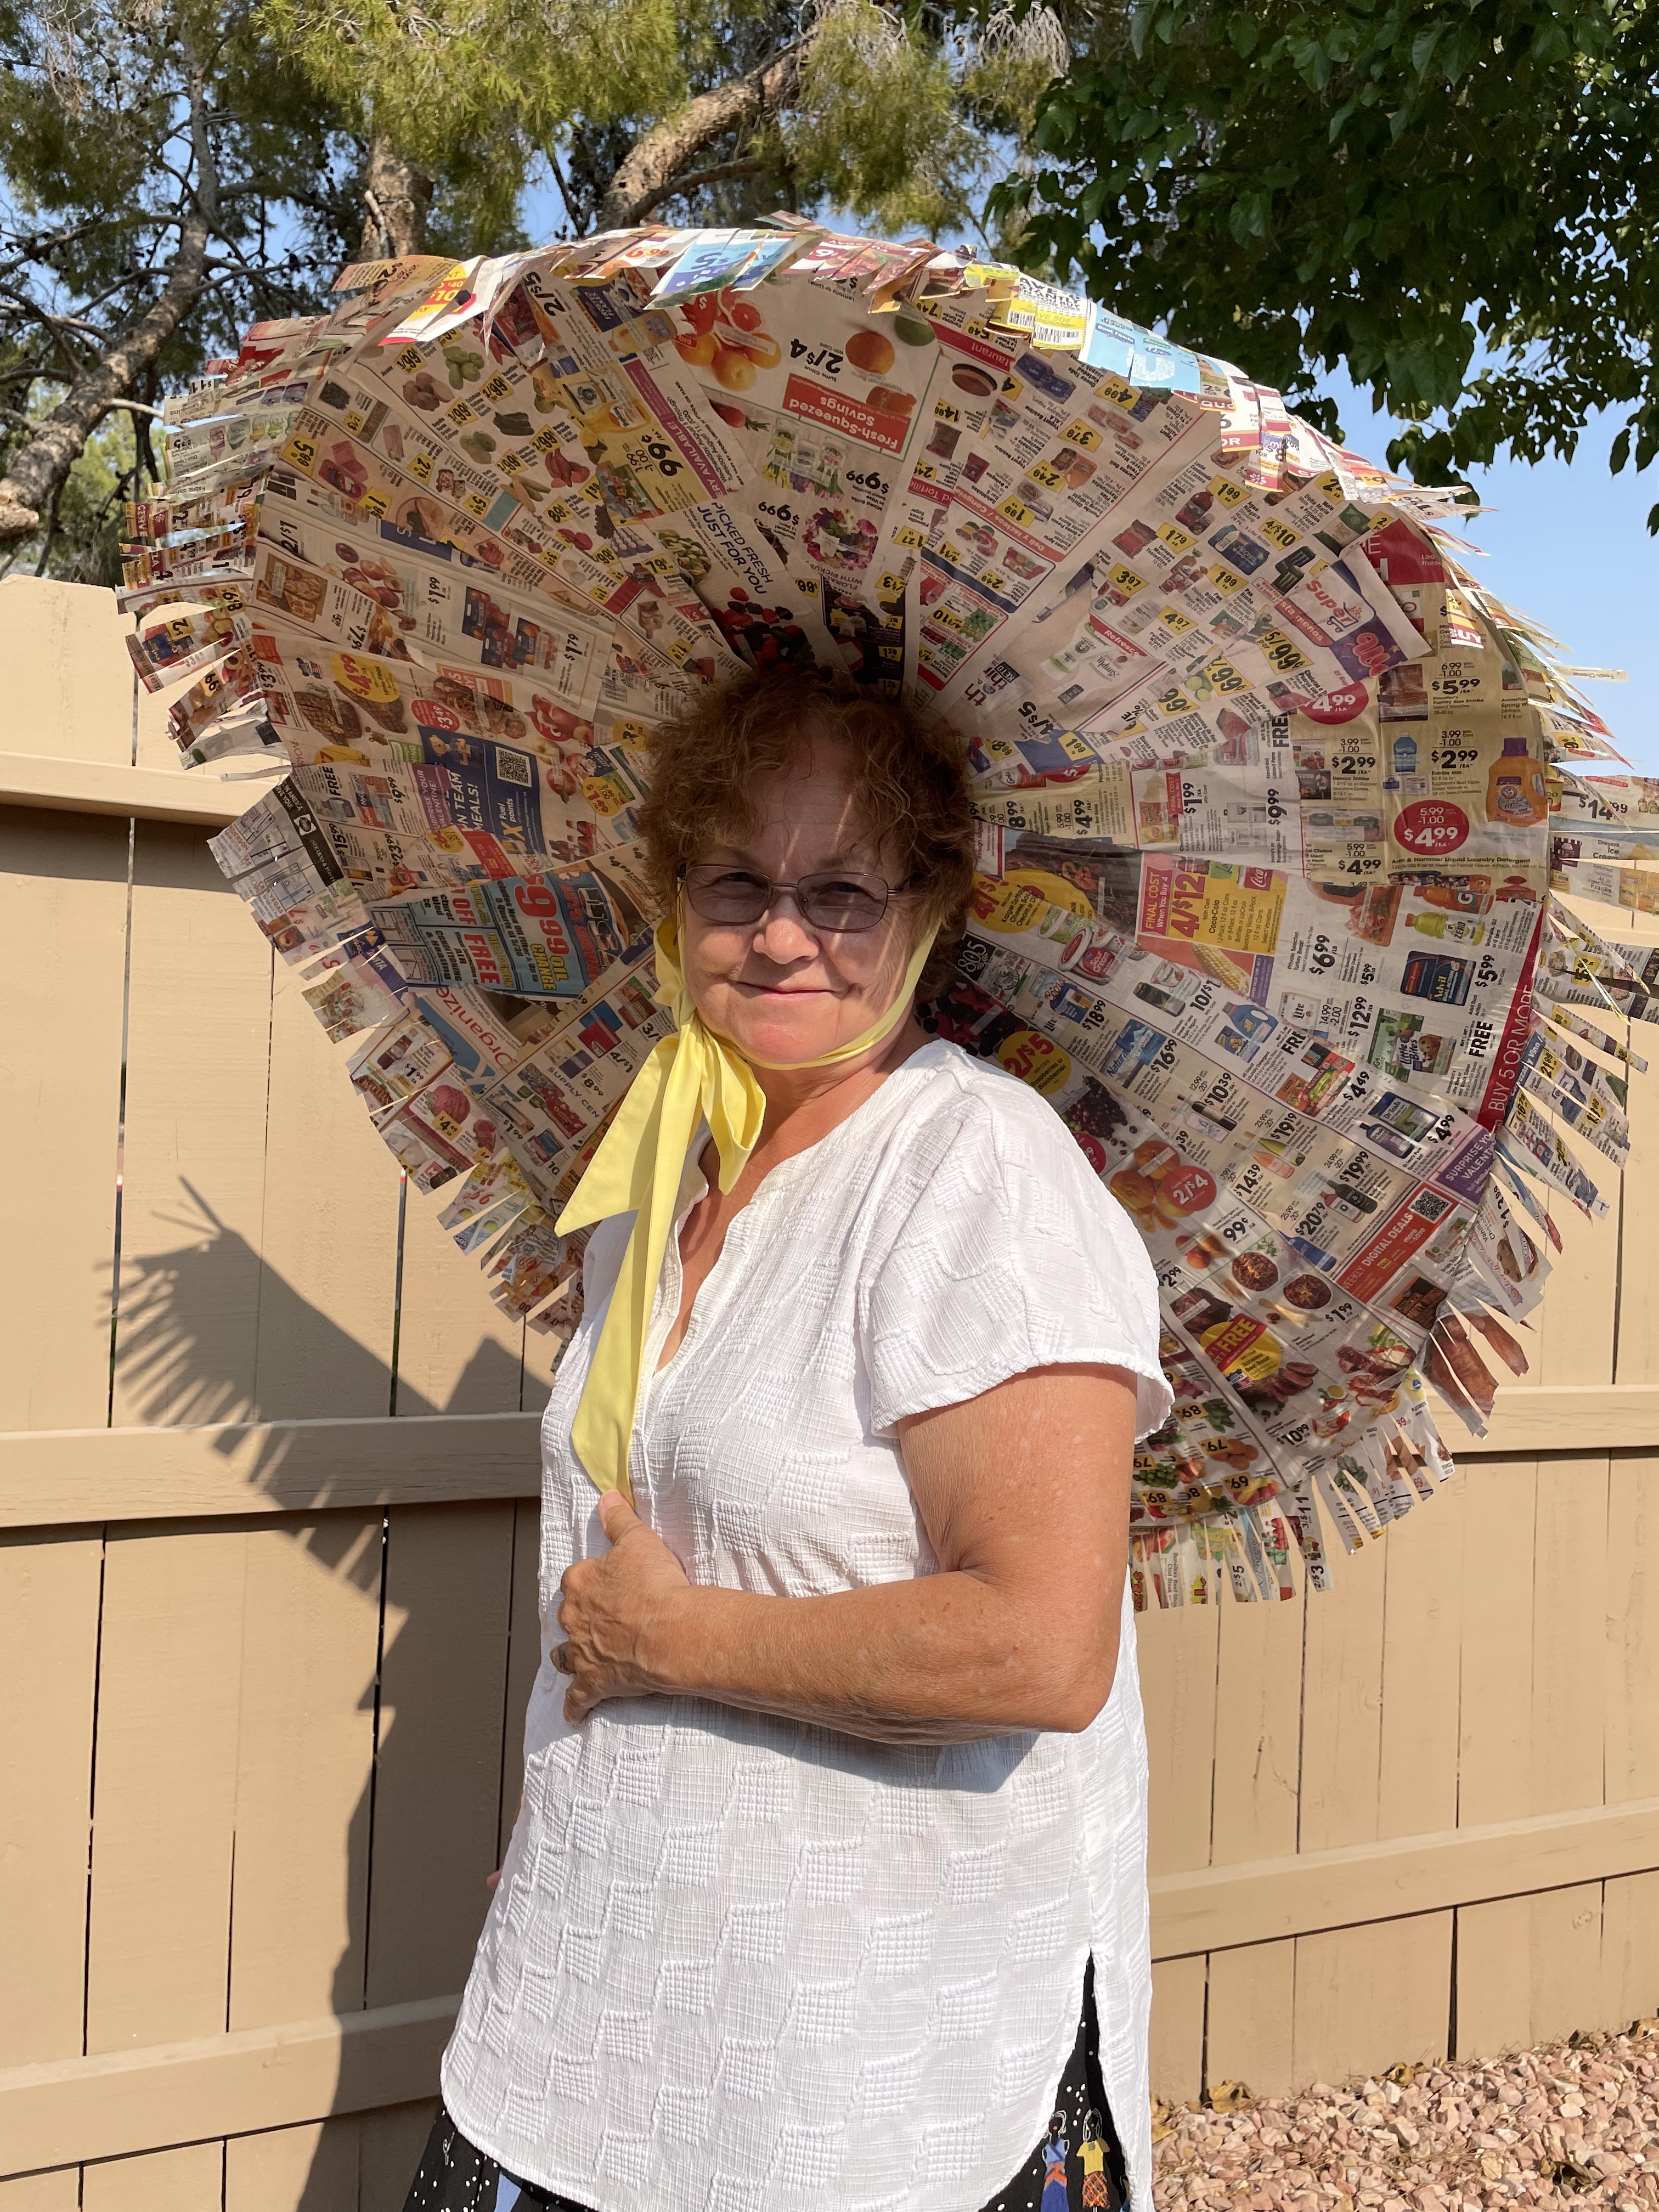 DeLyle displaying her sun hat